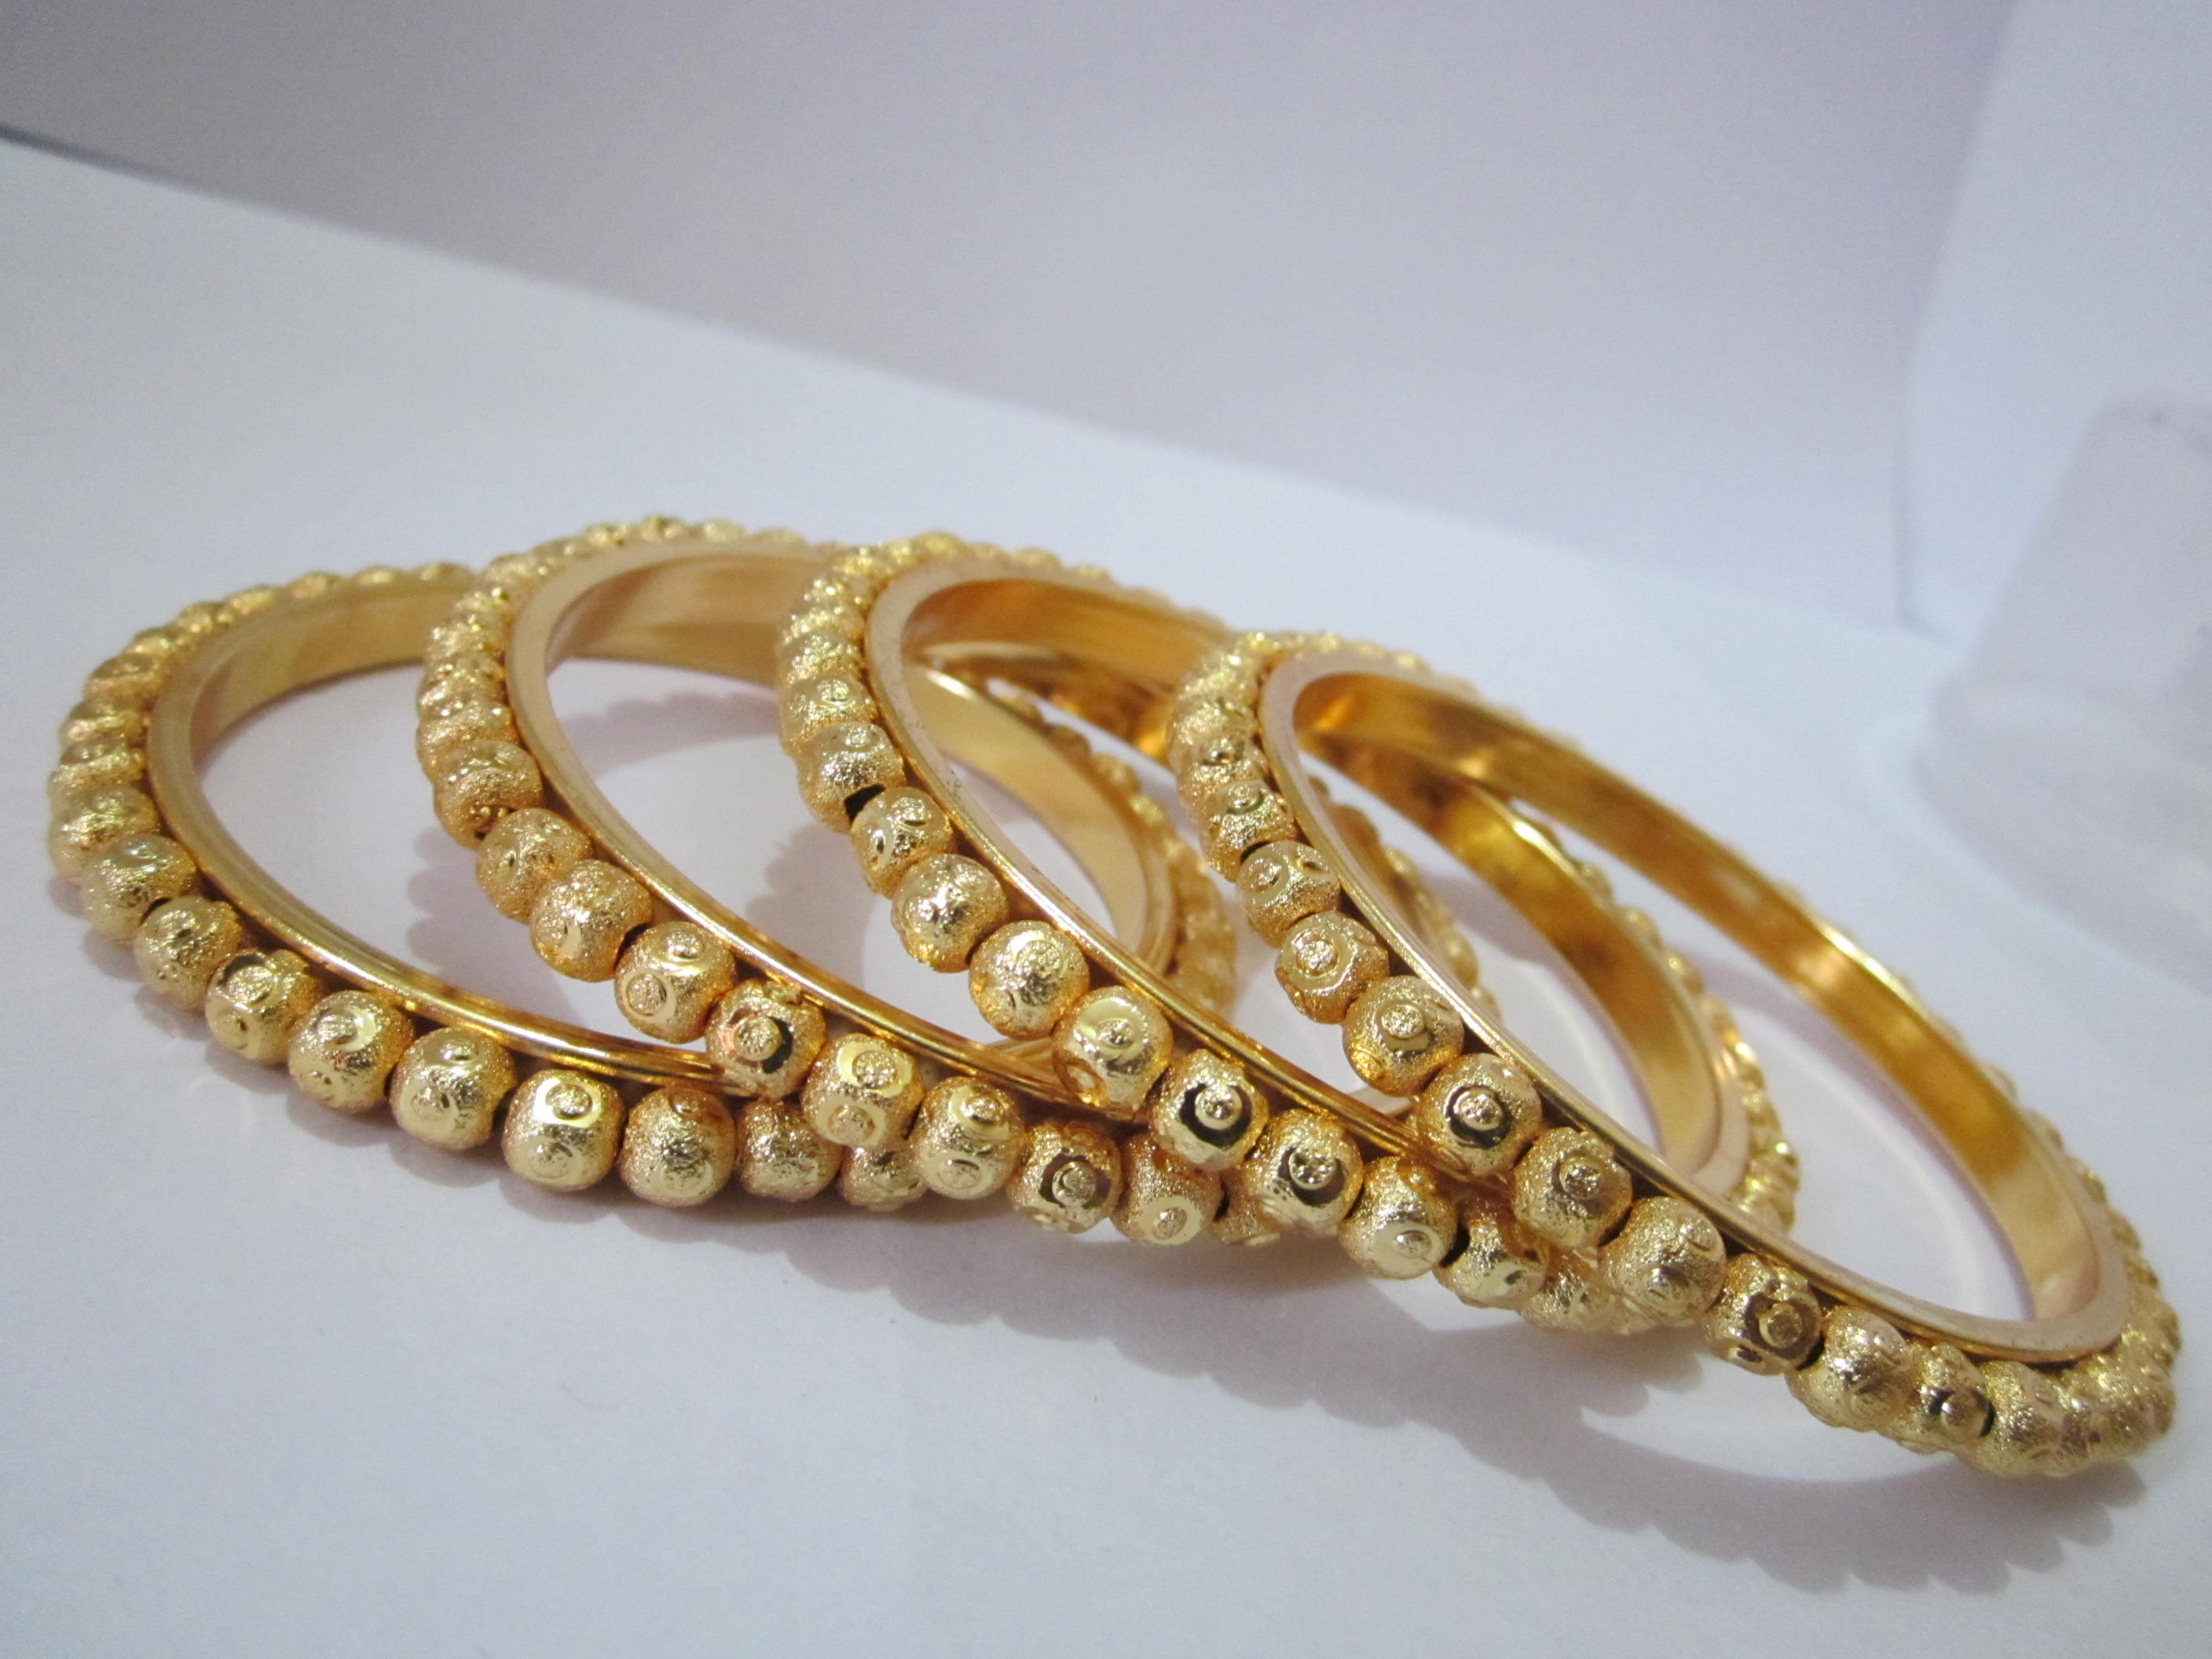 Gold Bangles Designs In 8 Grams Pictures to pin on Pinterest